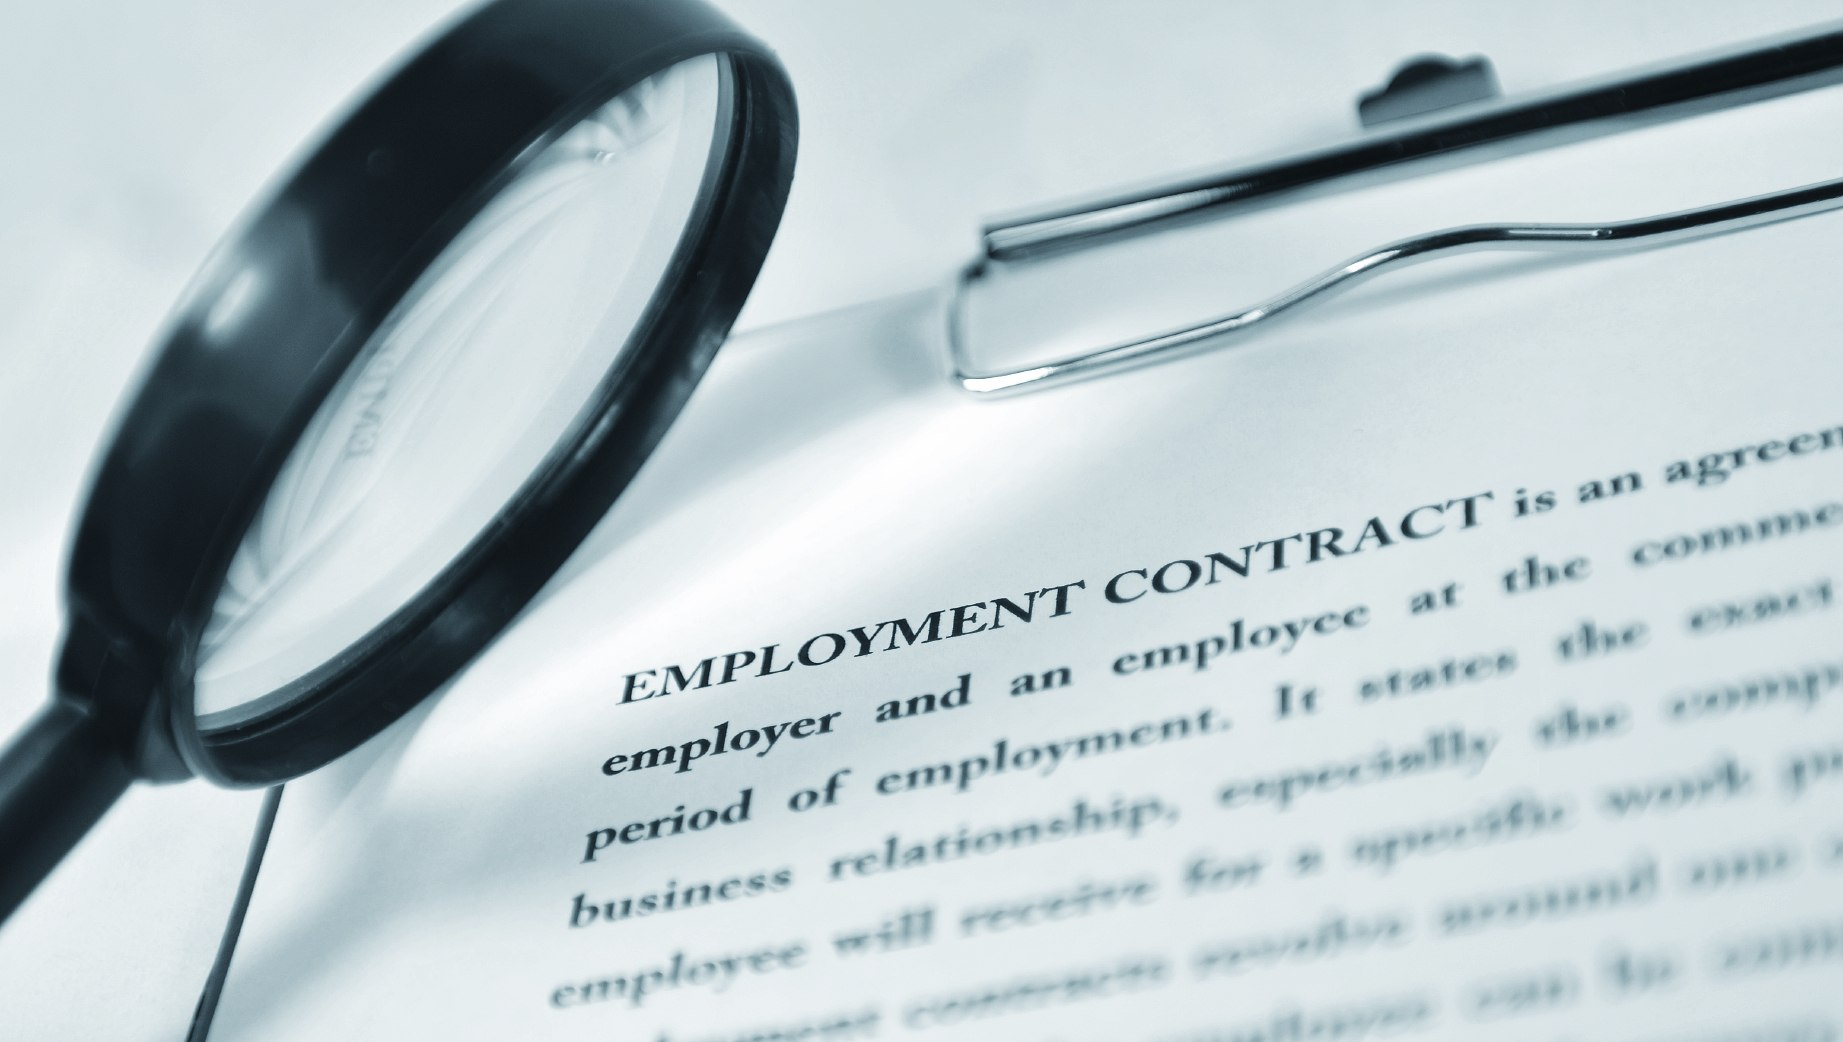 Labor Law: Why It Is Ideal to Know the Difference Between Exempt vs. Non-Exempt Employees